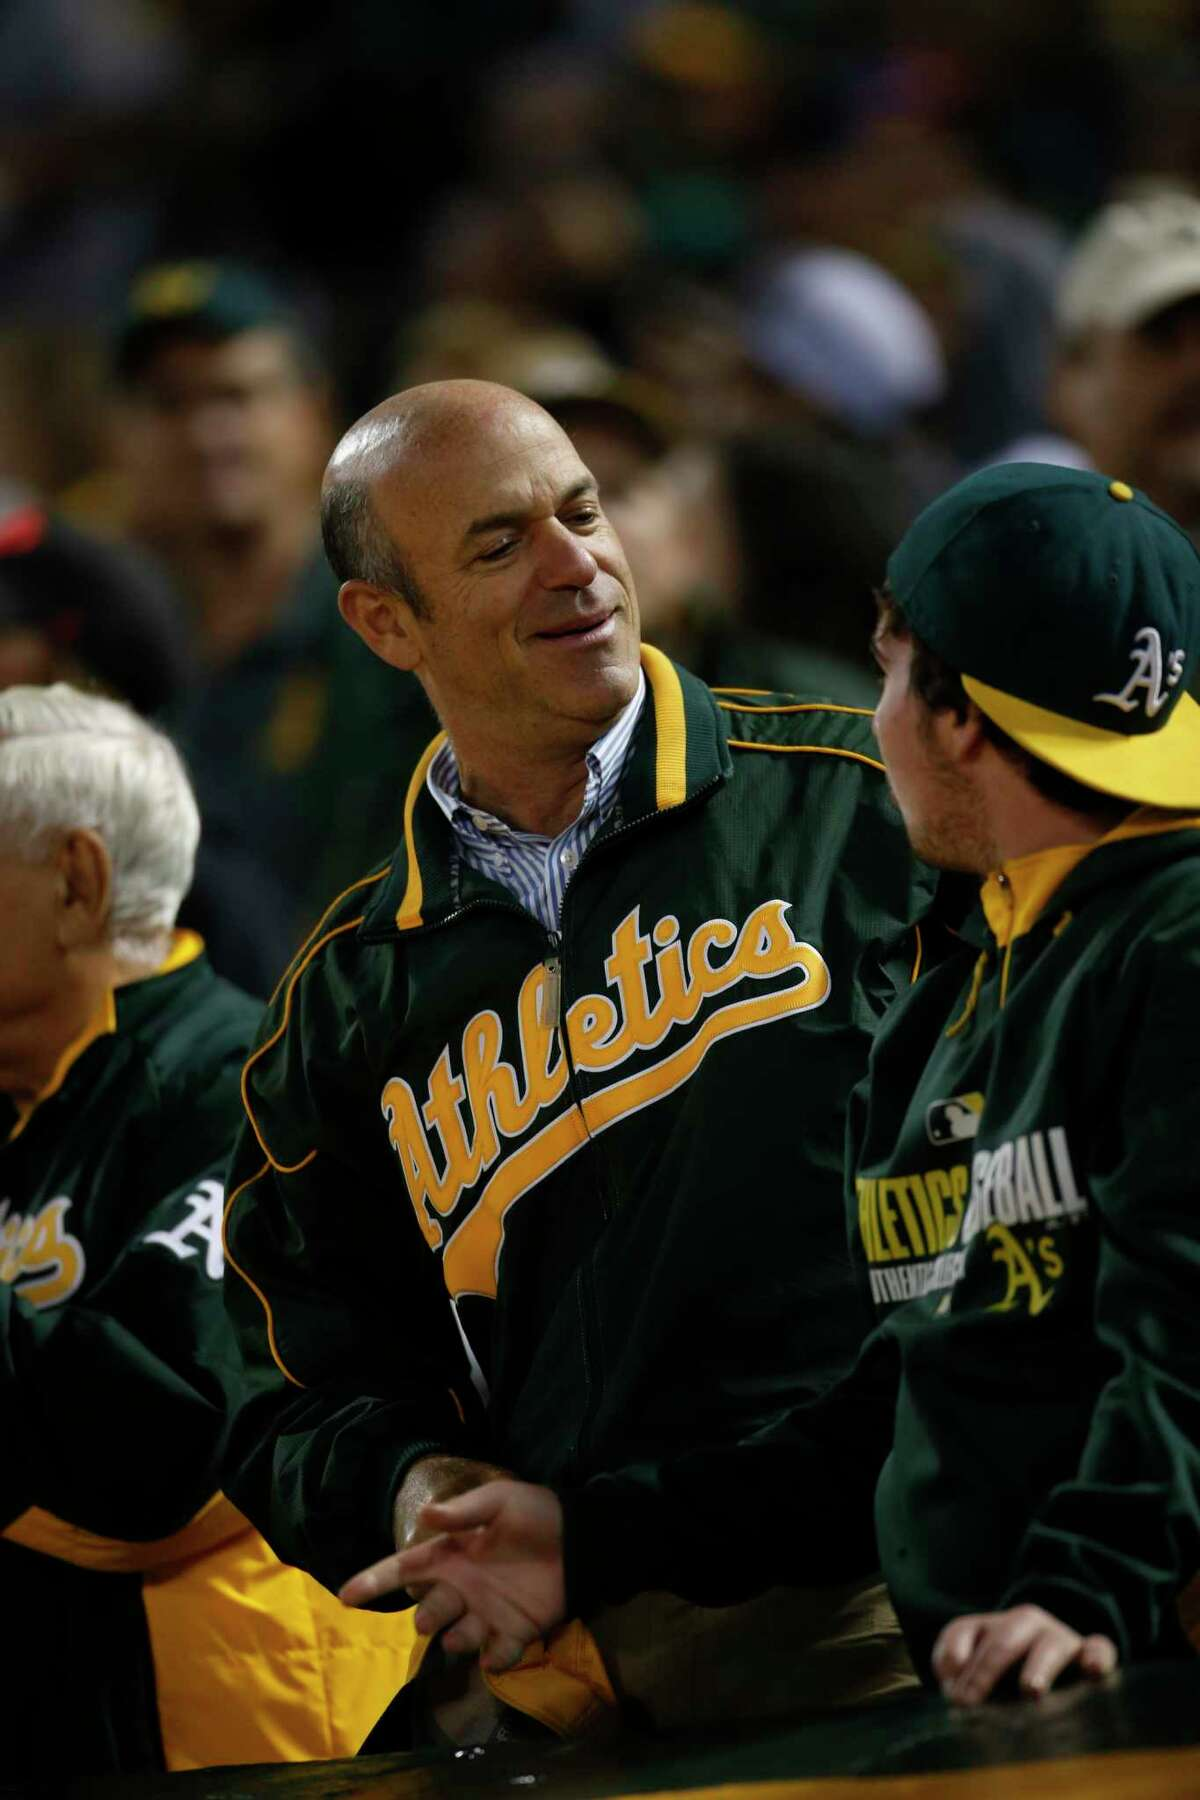 OAKLAND, CA - JULY 19: Owner John Fisher of the Oakland Athletics stands in the stands during the game against the Houston Astros at the Oakland Coliseum on July 19, 2016 in Oakland, California. The Athletics defeated the Astros 4-3. (Photo by Michael Zagaris/Oakland Athletics/Getty Images)